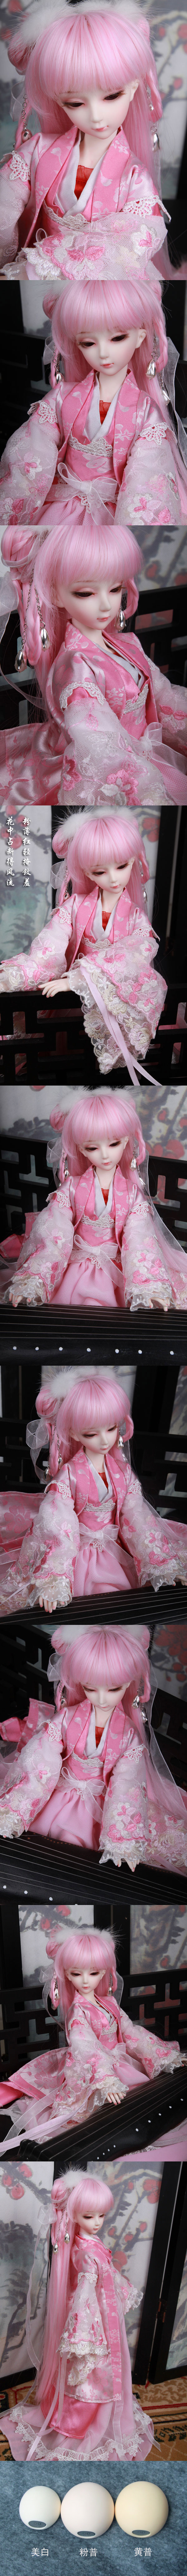 BJD Fen Ying Girl 43cm Boll-jointed doll